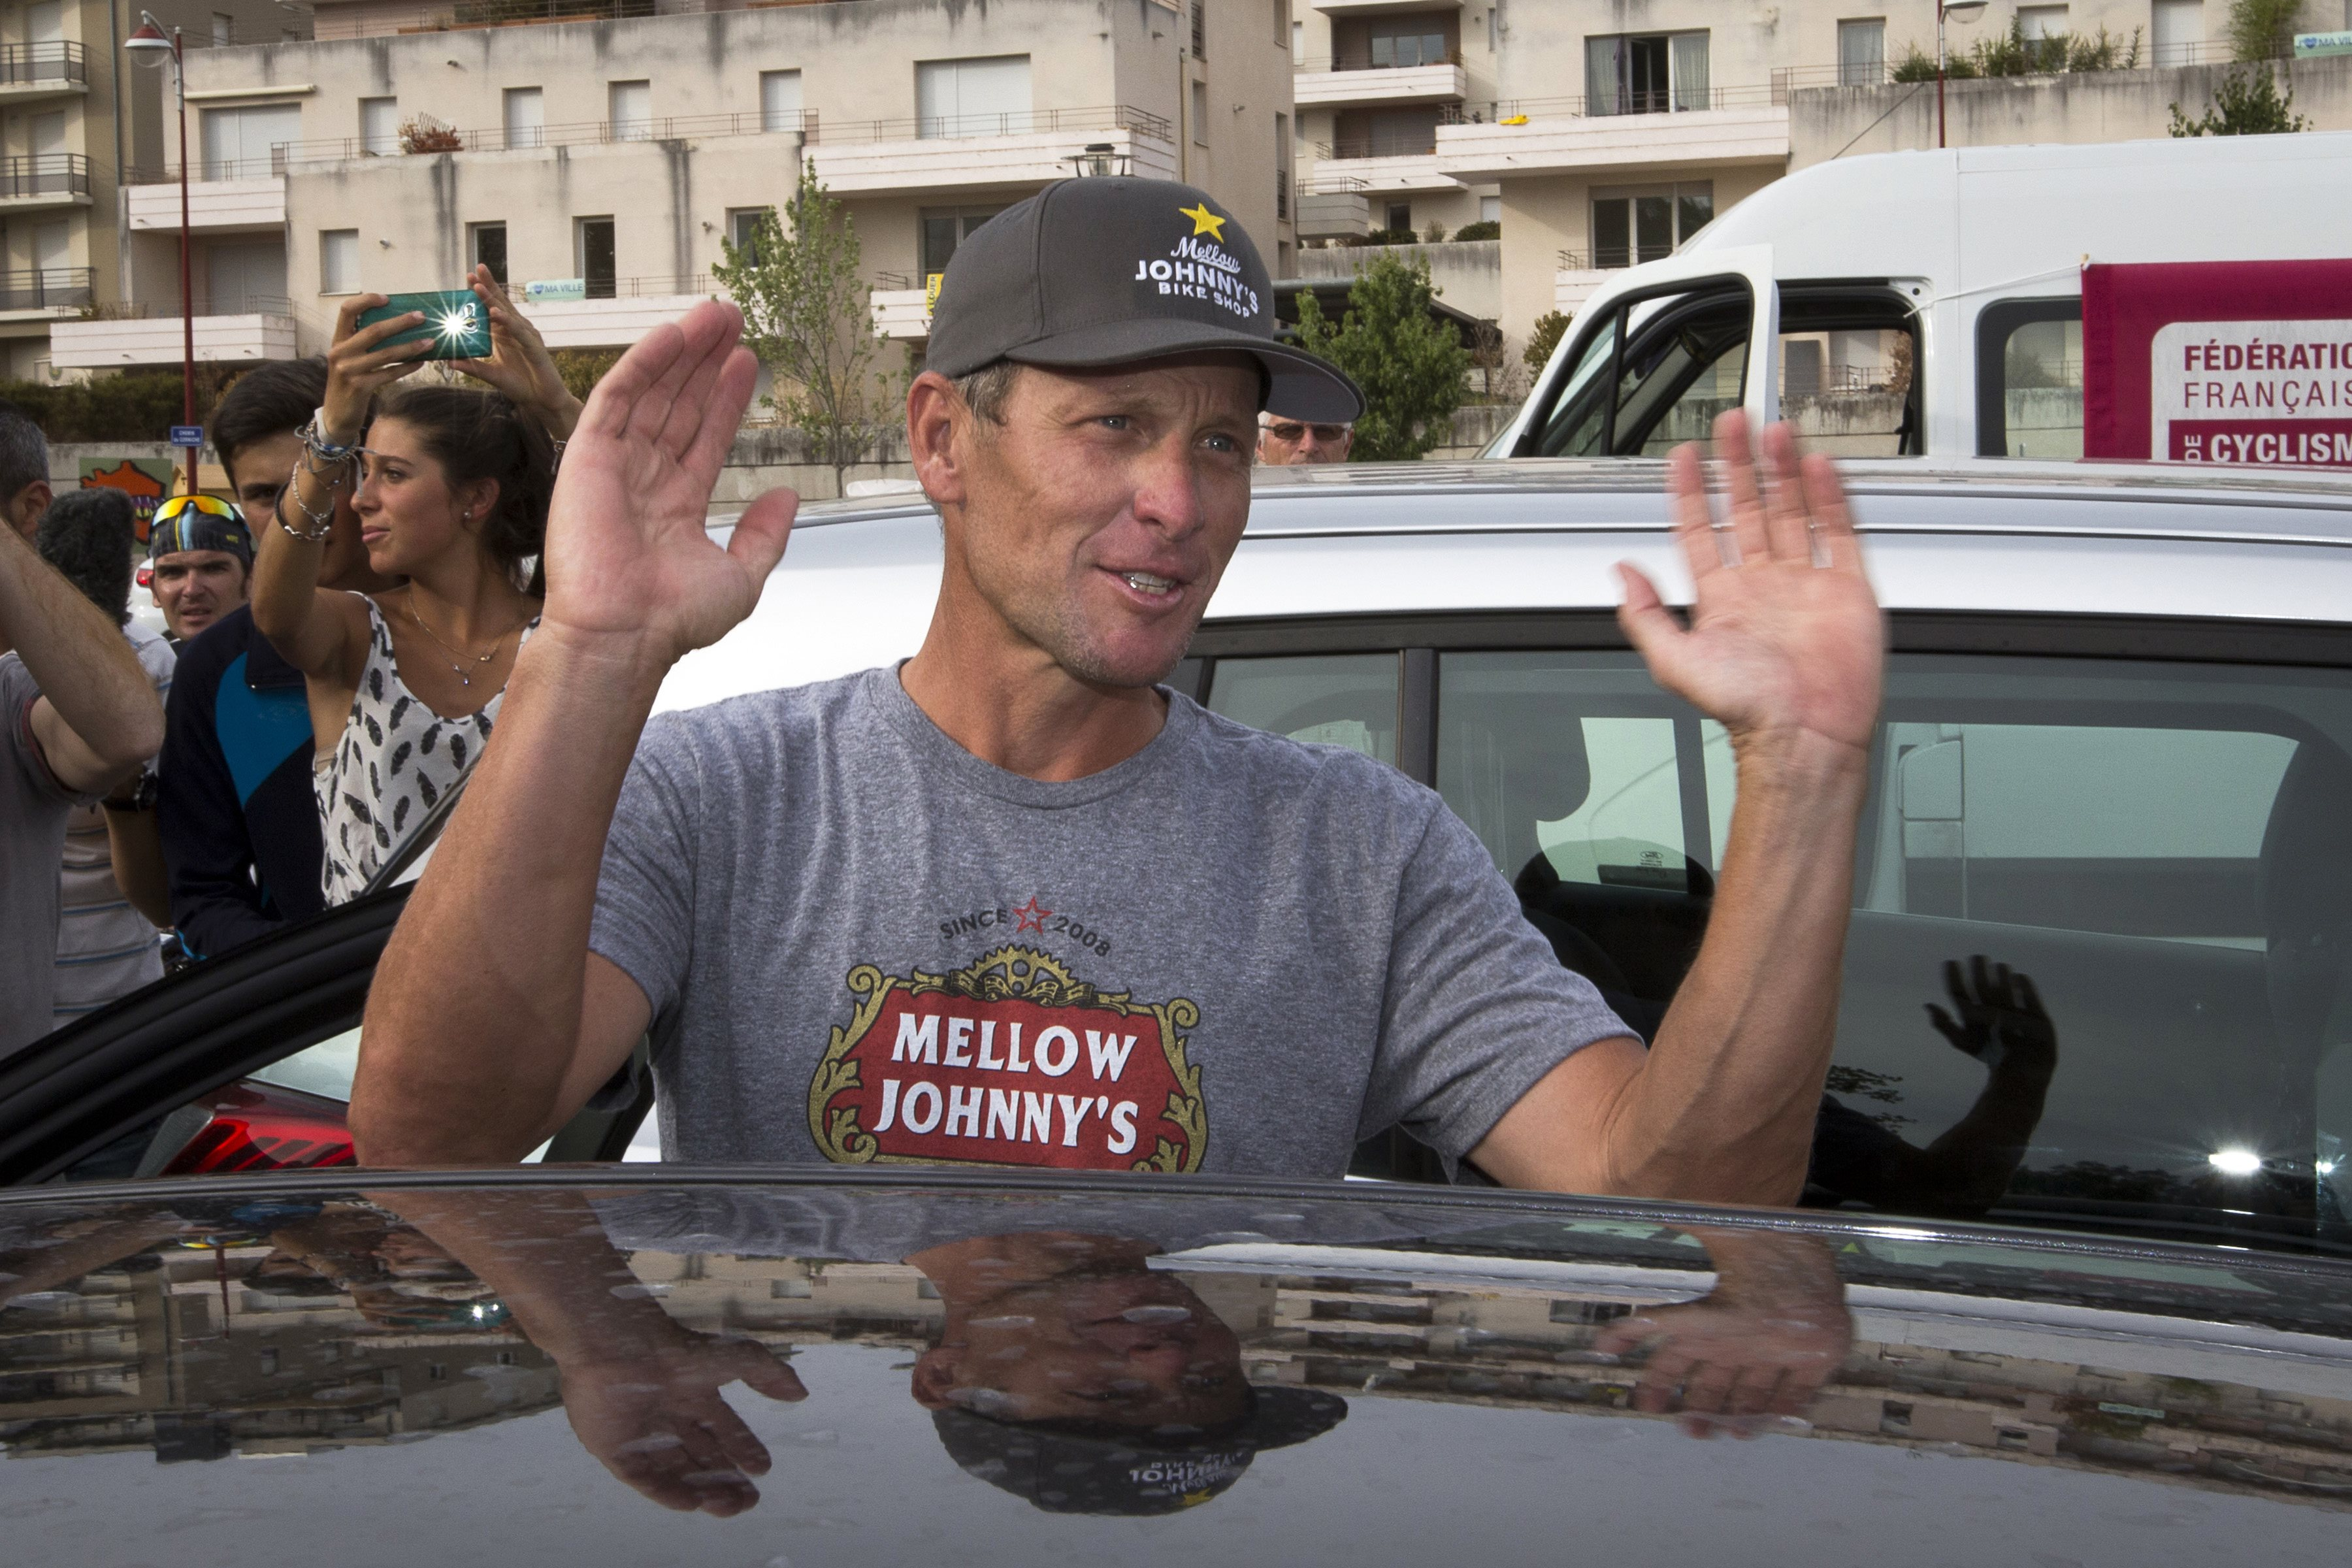 Cyclisme - Lance Armstrong paye 5 M$ pour fermer son dossier judiciaire